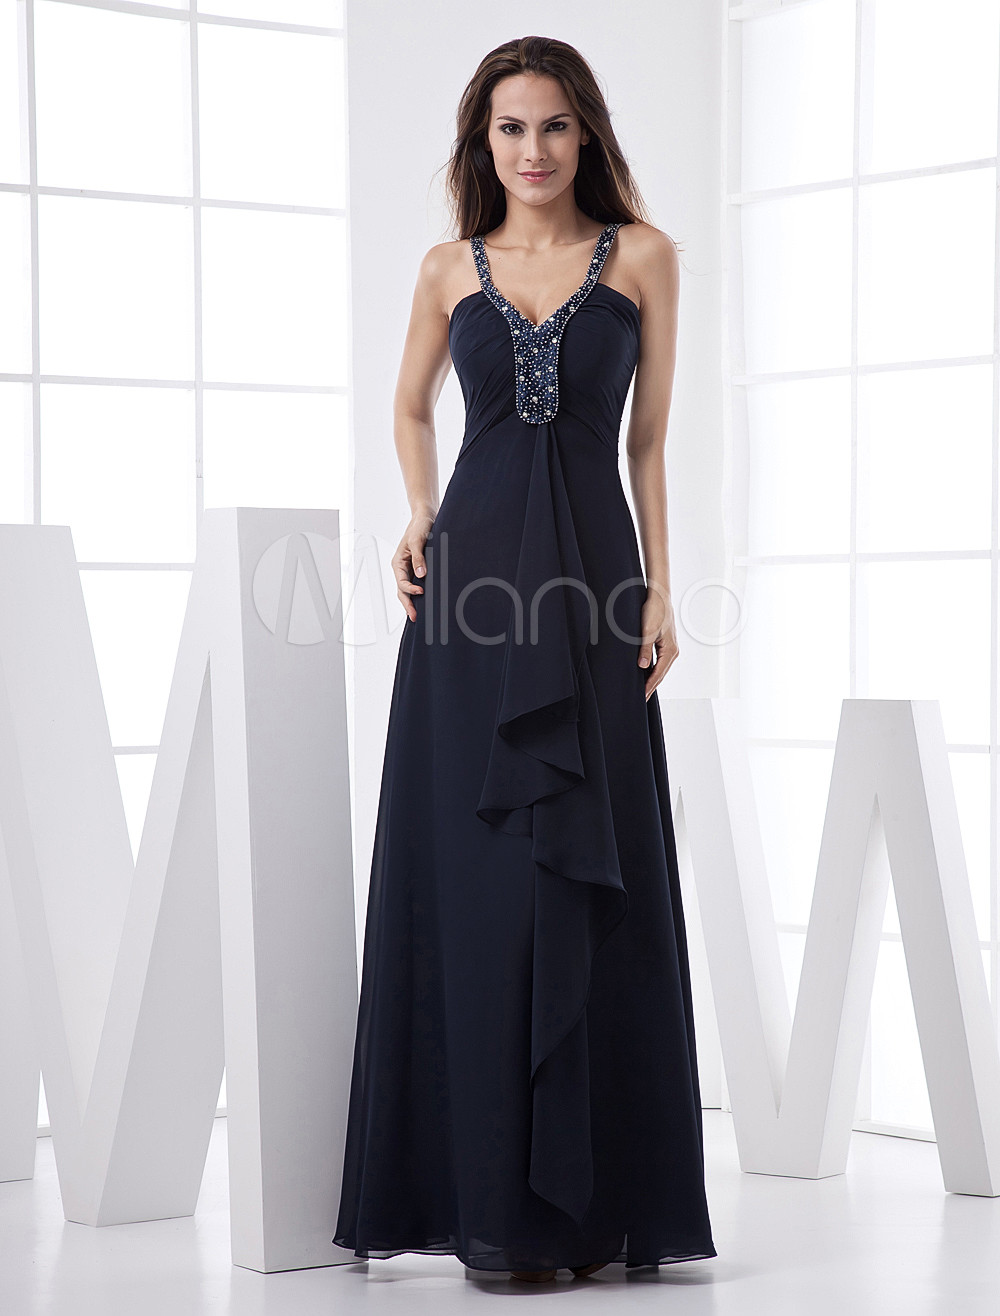 Elegant Navy Blue Chiffon Ruffles Evening Dress